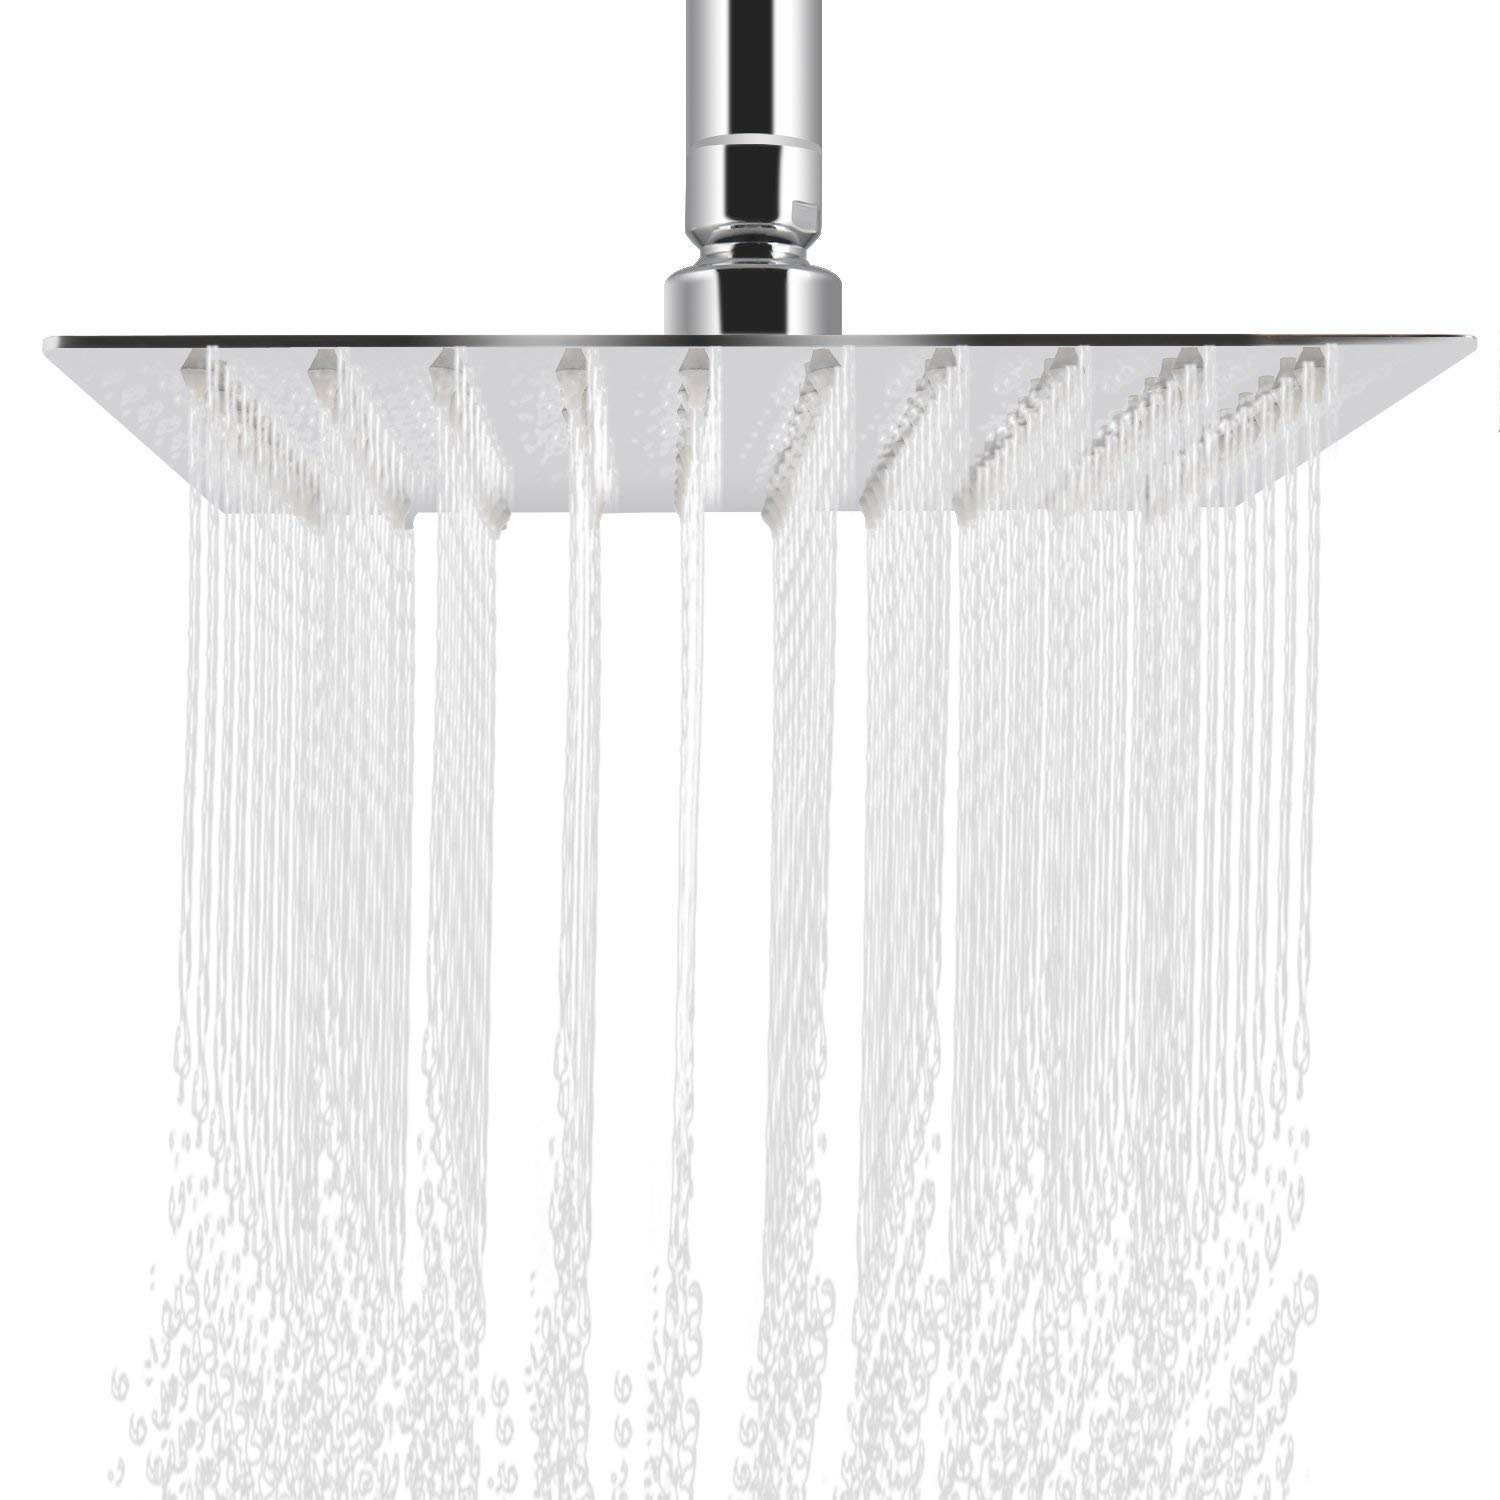 10 inch Square Rainfall Shower Head High Pressure - deluxe Stainless Steel Rain Spray Showerhead Filter - Waterfall Effect Water Saving - Wall Mounted jooe